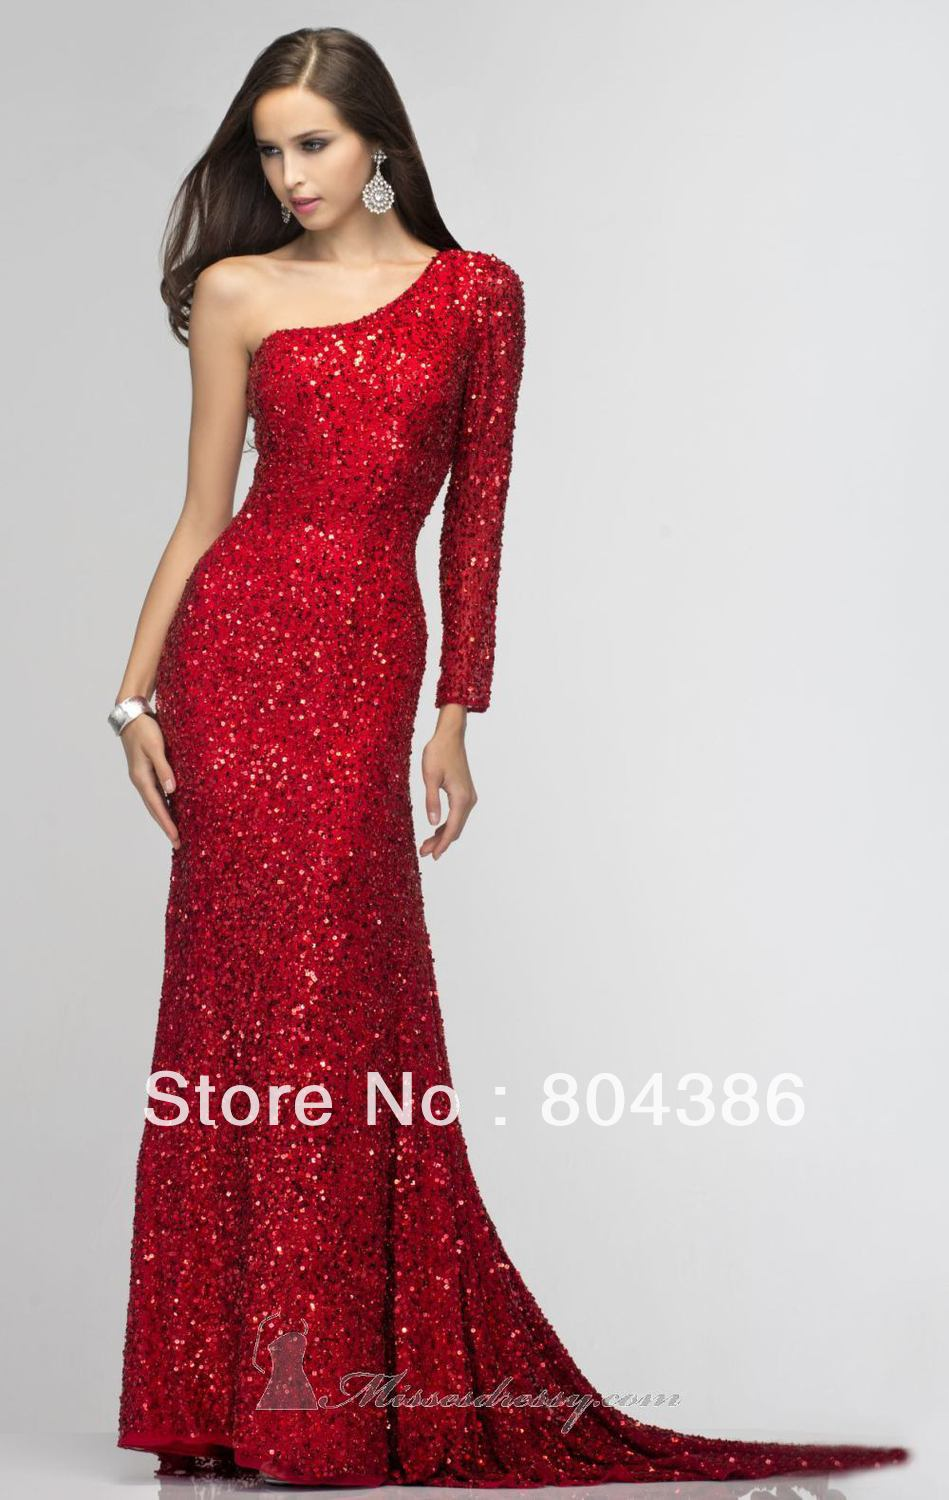 Gold silver red sequins beaded one shoulder long sleeve sexy sequins prom dress one sleeve evening dress-in Evening Dresses from Apparel & Accessories on Aliexpress.com